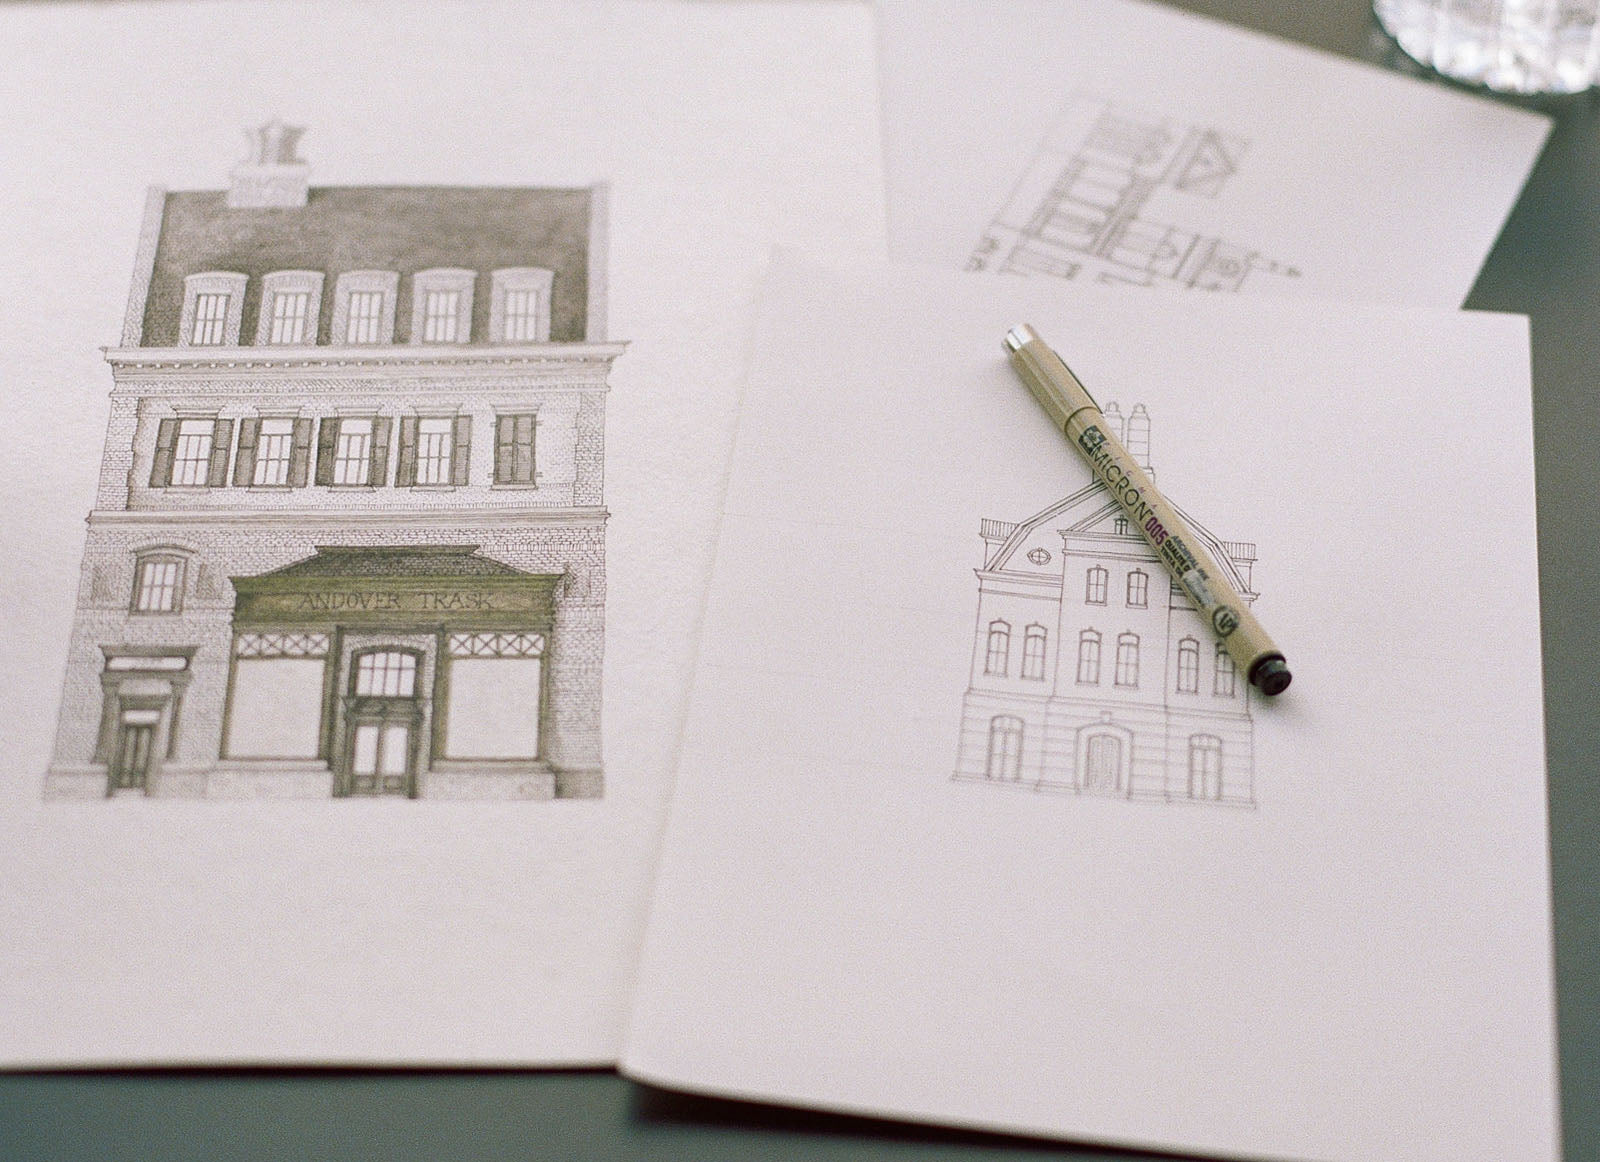 Drawing of historic architecture by Matt Weaver of Andover Trask